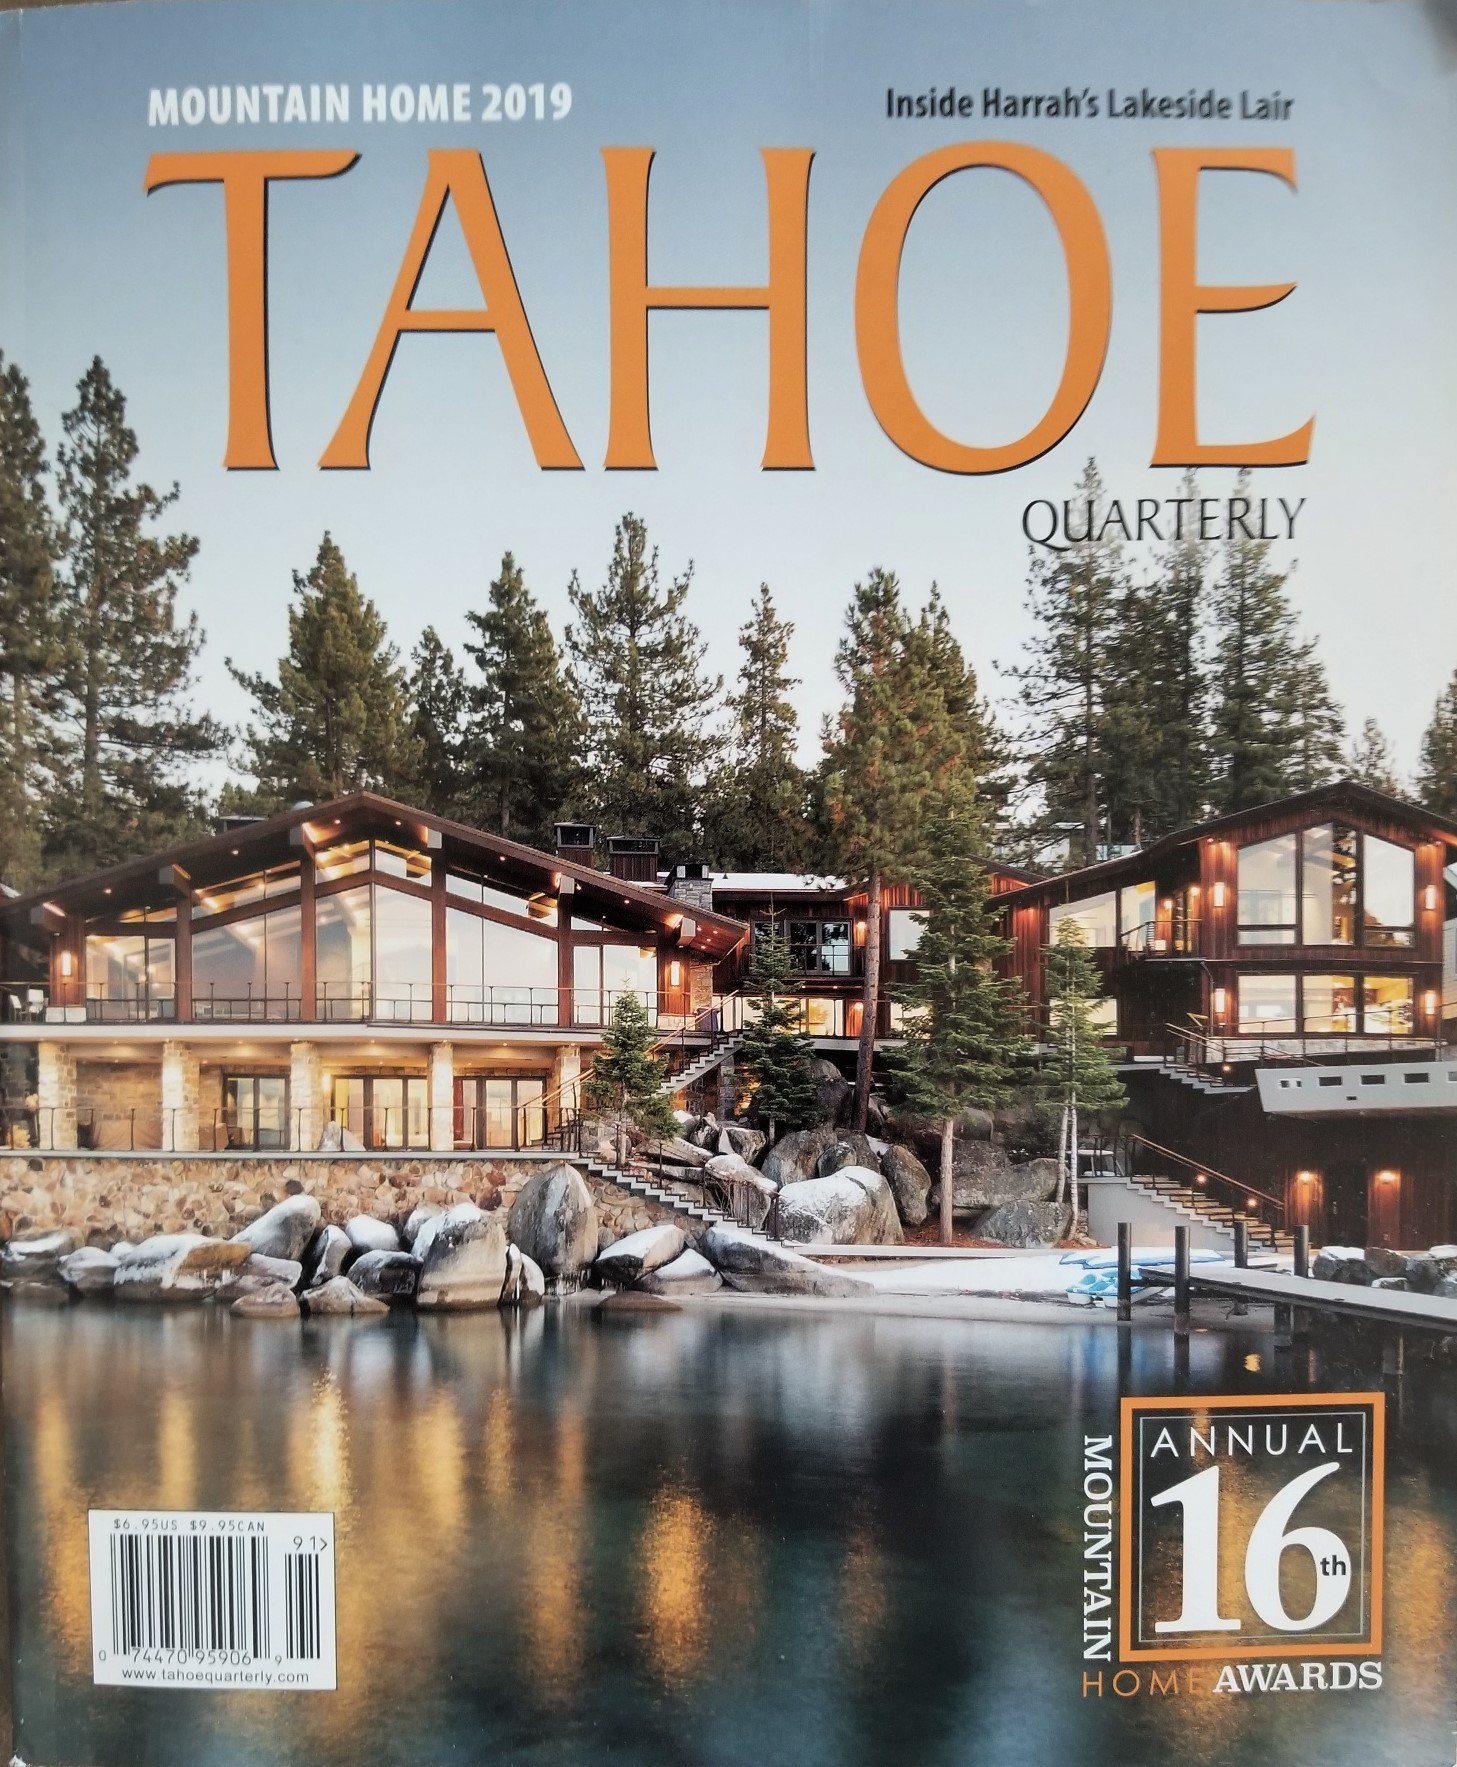 TAHOE QRTLY CVR OF VILLA HARRAH .jpg